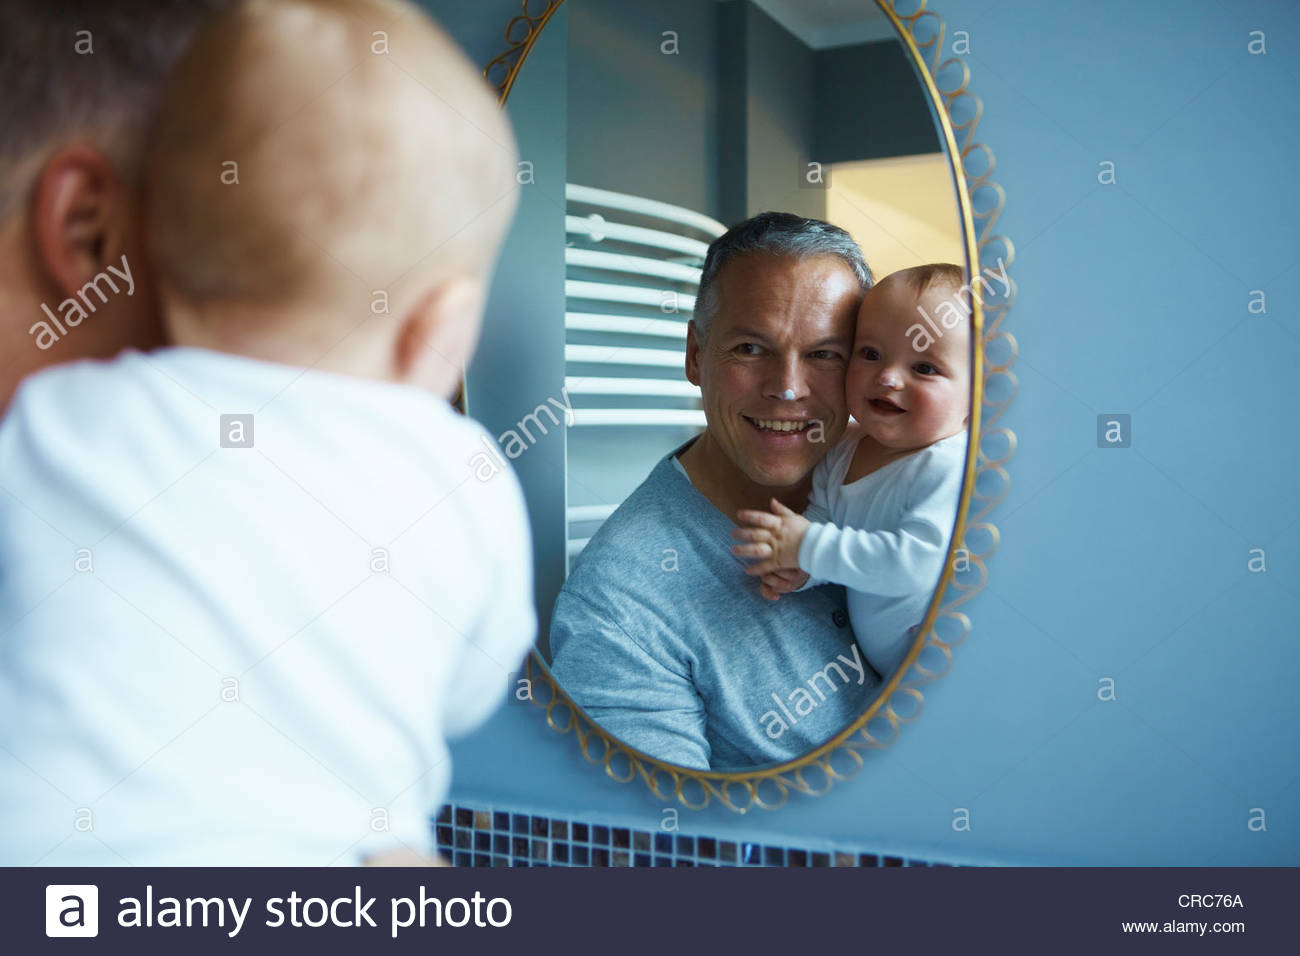 Father and baby admiring themselves - Stock Image